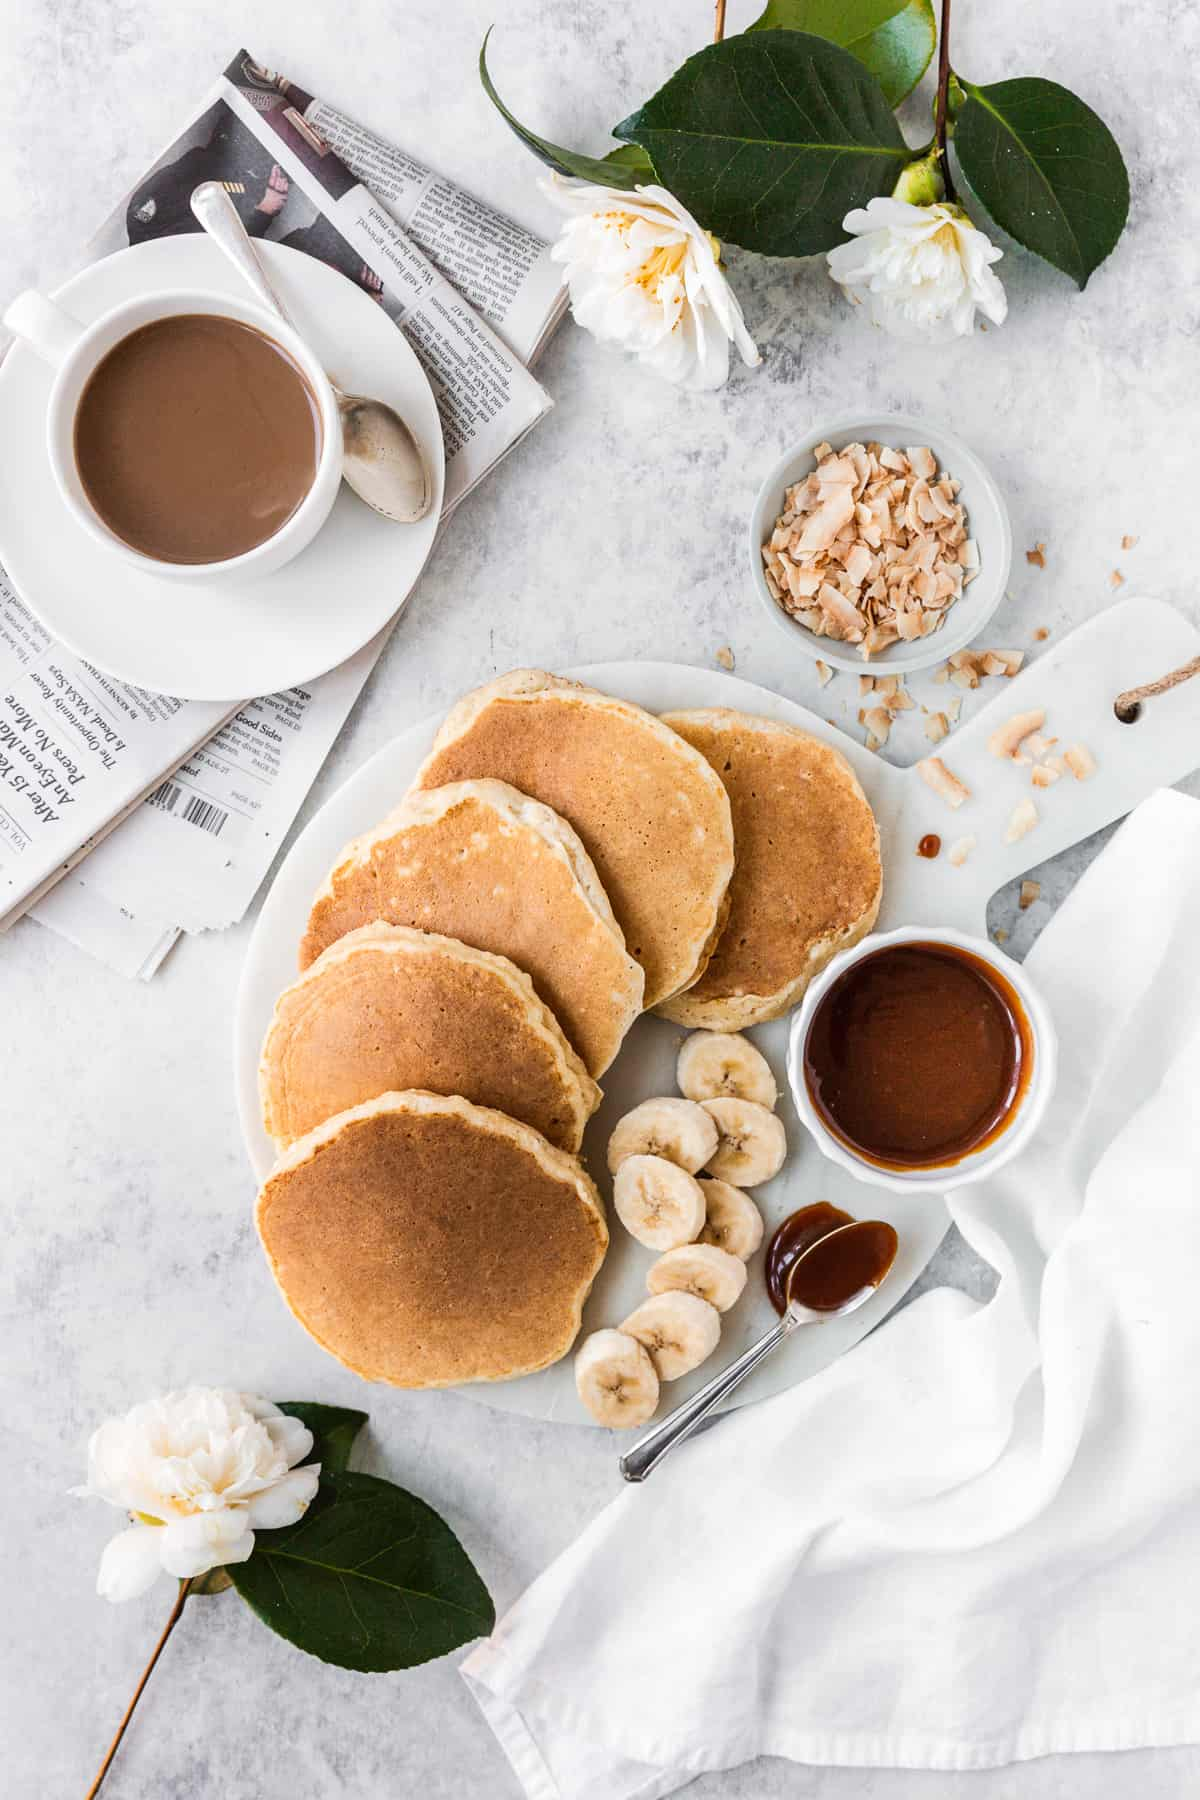 Breakfast scene with serving platter topped with ricotta pancakes, sliced banana and carmakers sauce.